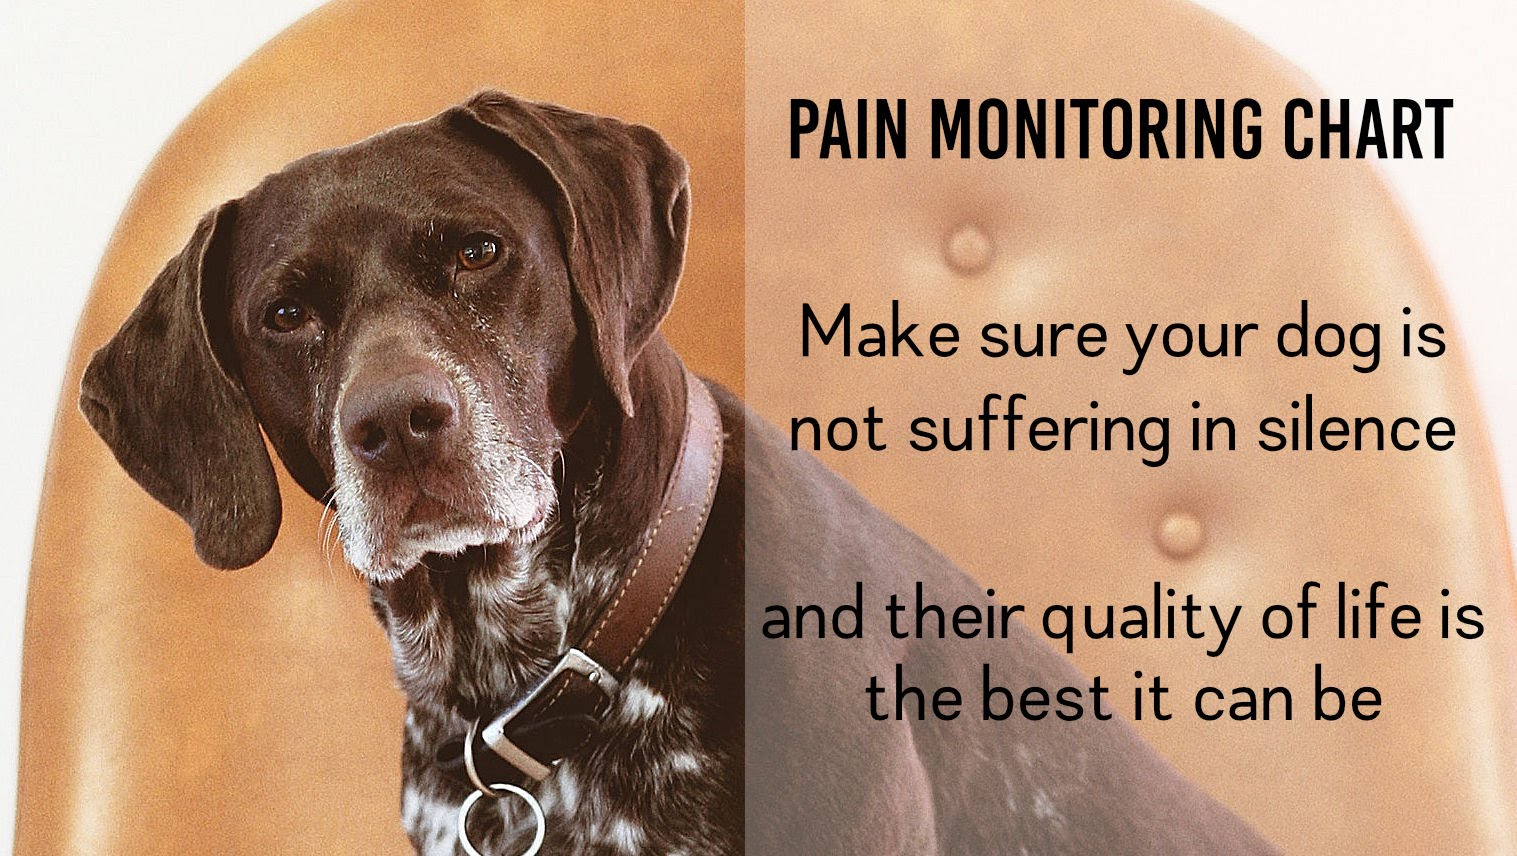 make sure your holistic home management plan is working and that your dog is not in any pain from their arthritis